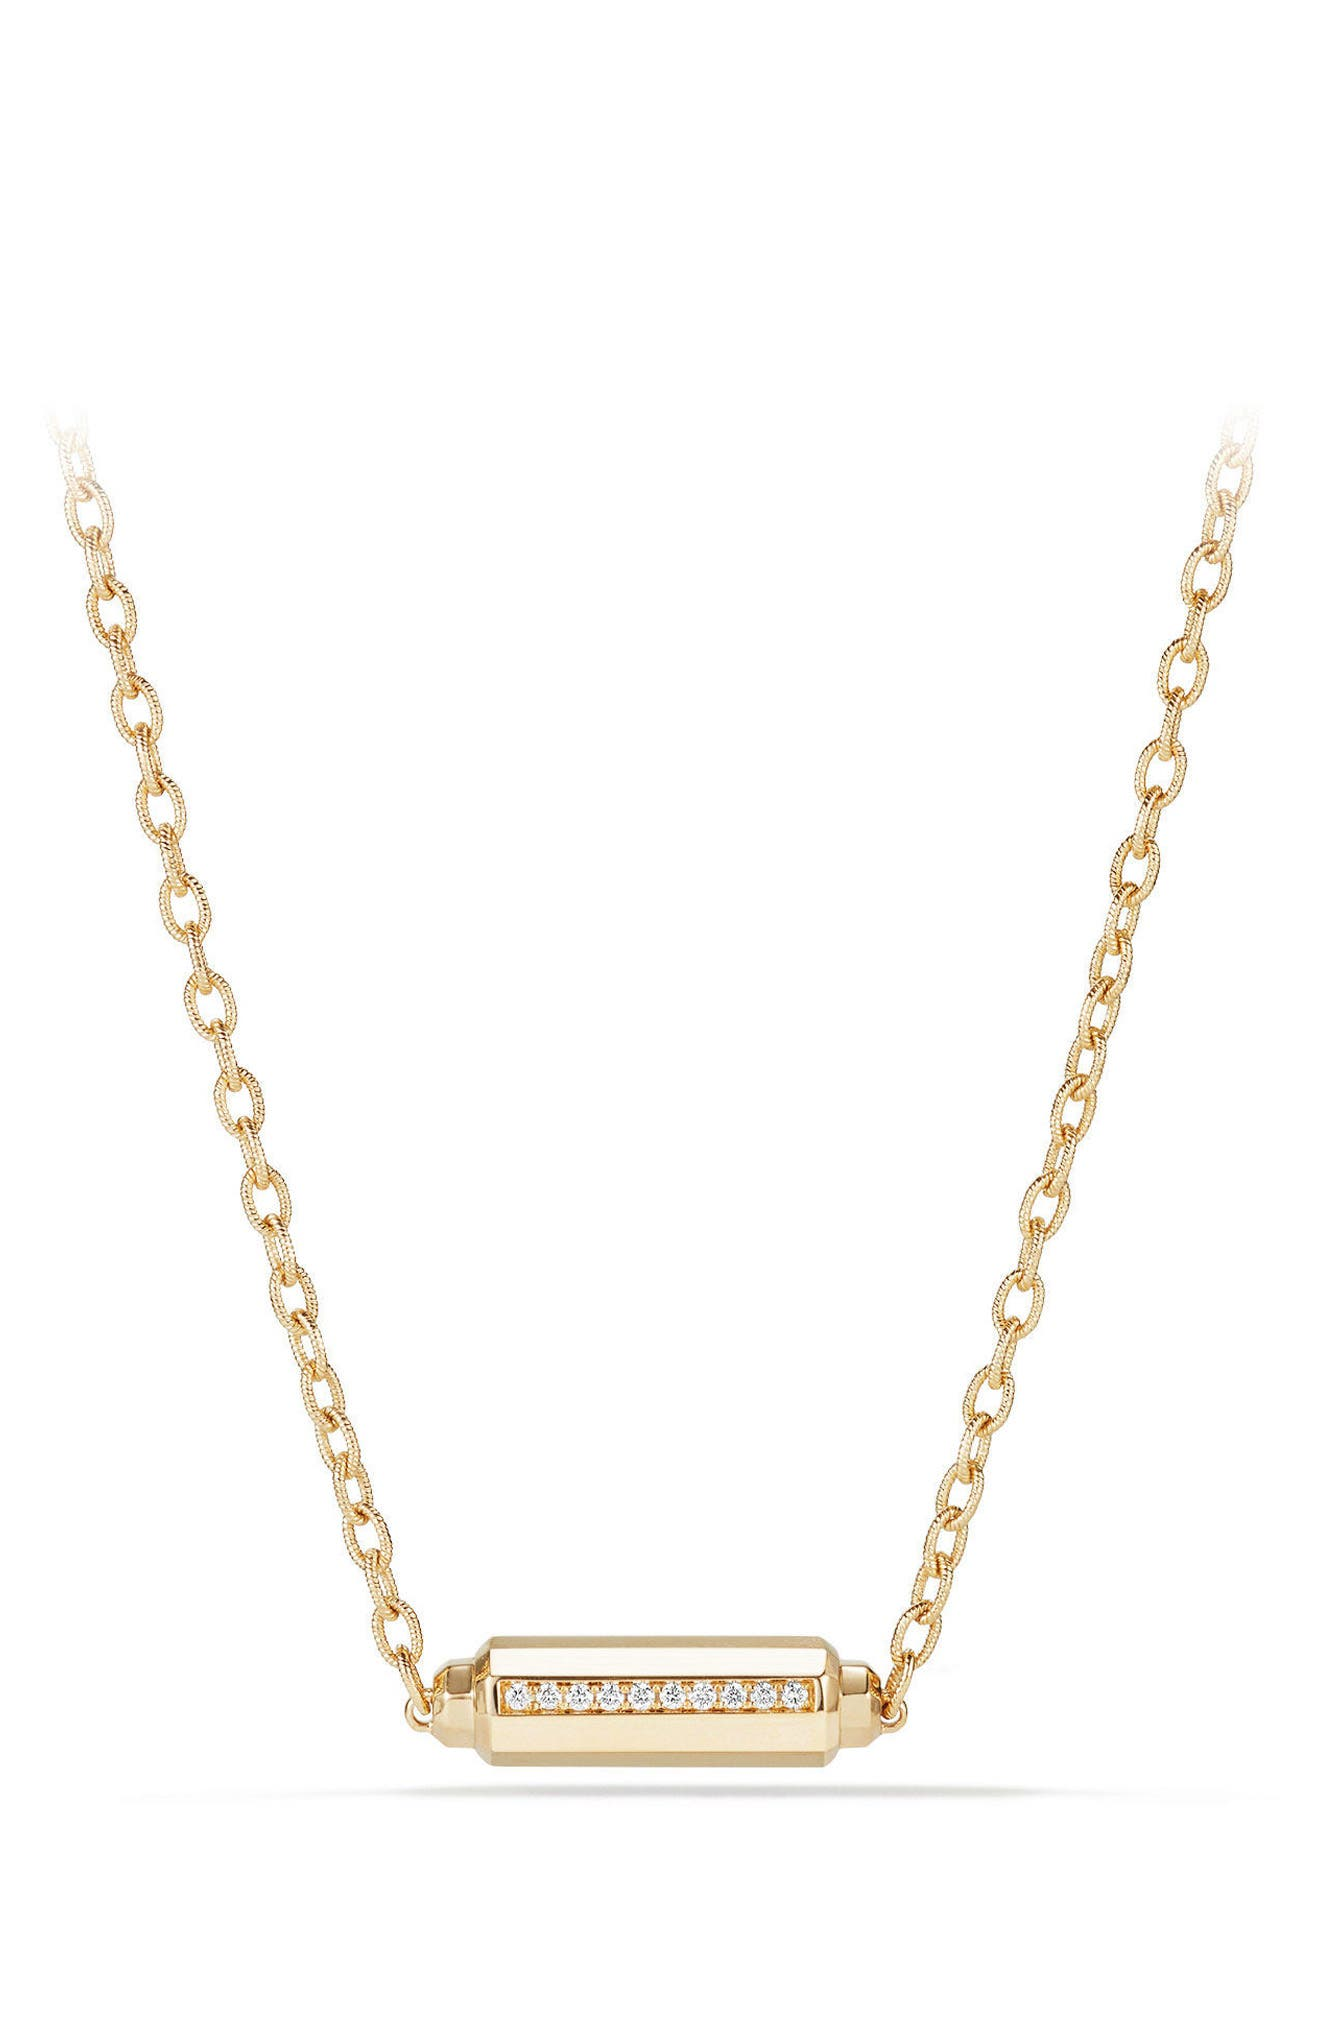 Barrels Single Station Necklace with Diamonds in 18K Gold,                             Main thumbnail 1, color,                             YELLOW GOLD